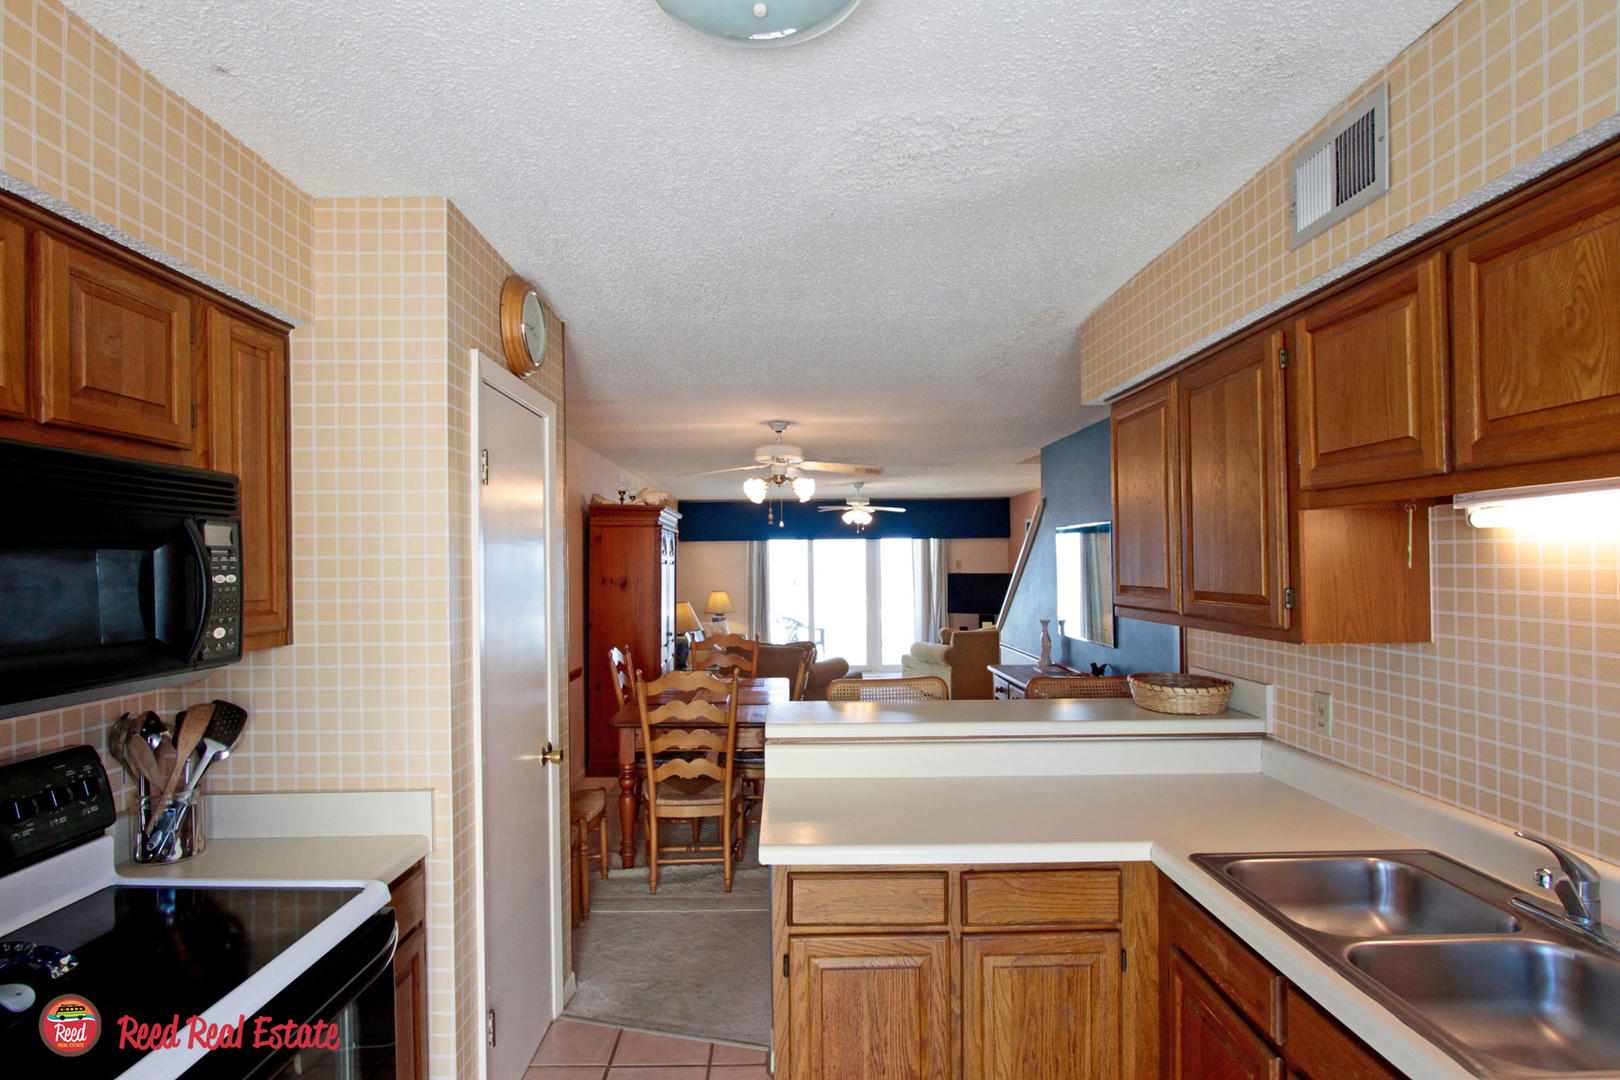 Kitchen overlooking living/dining area